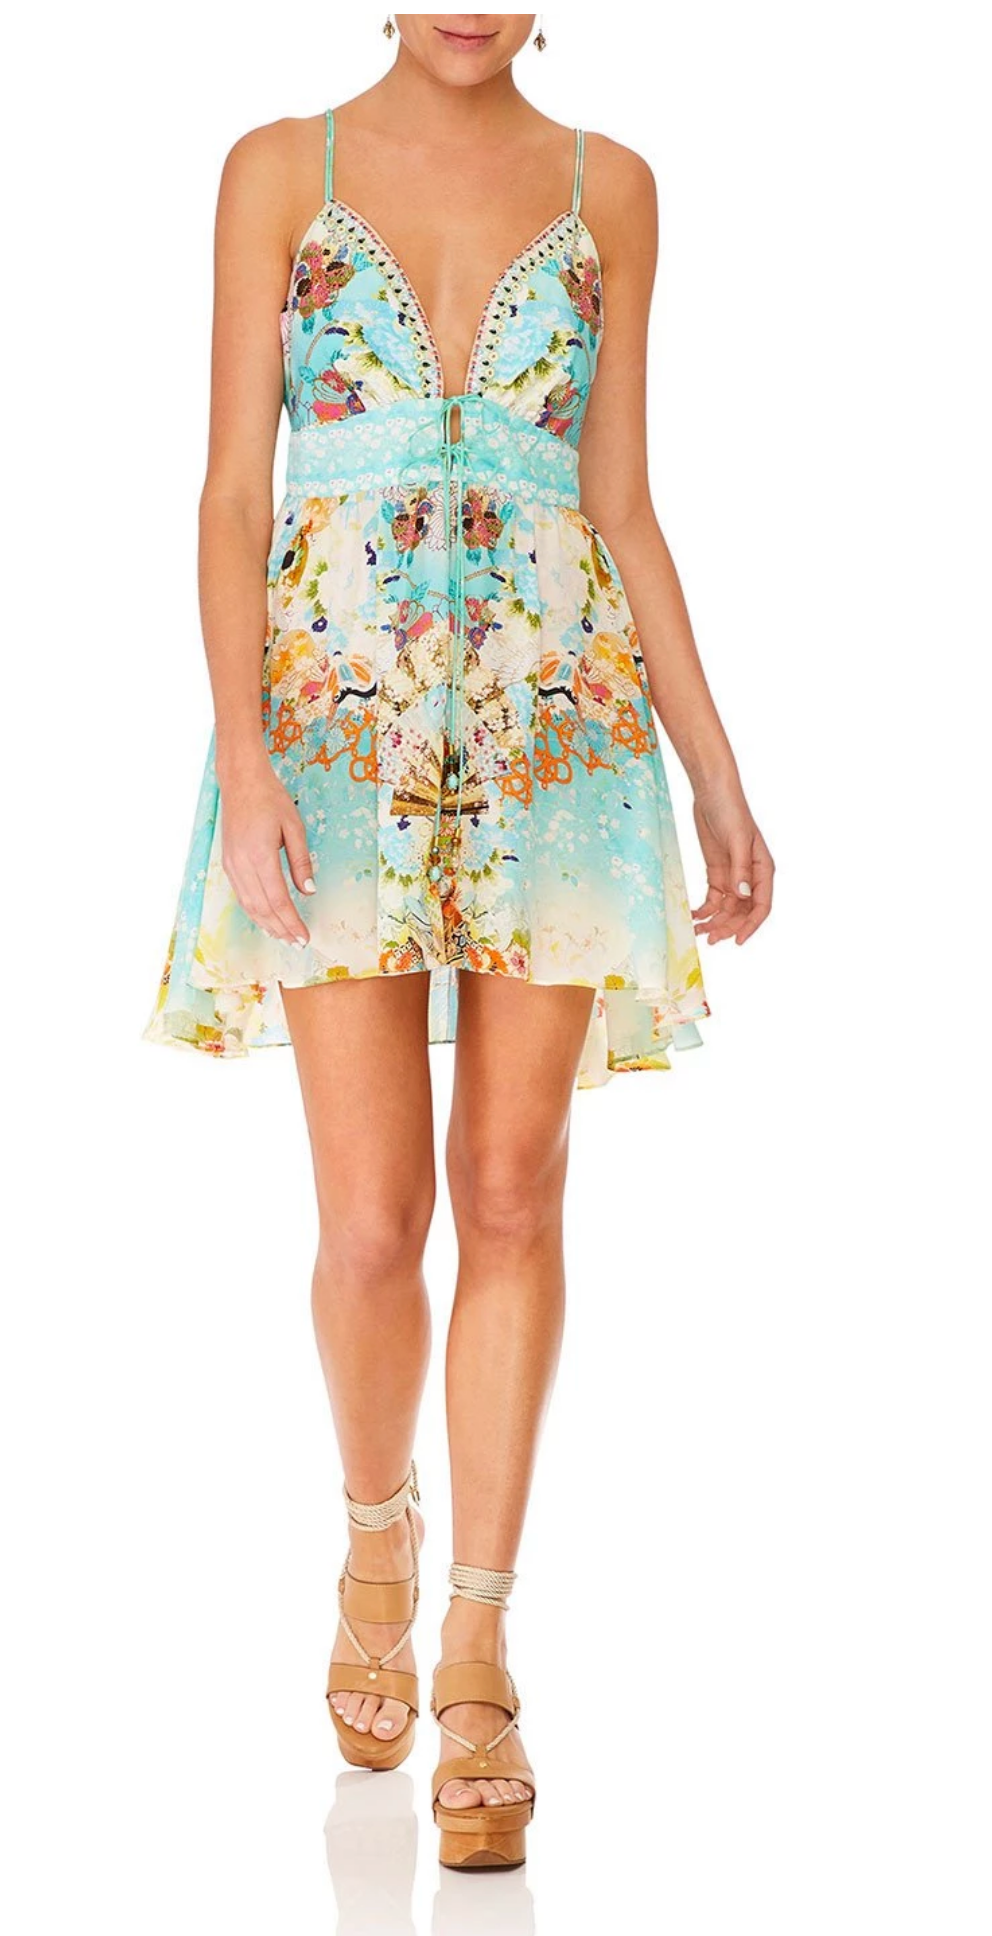 Camilla Retro Rainbow Tie Front Mini Dress